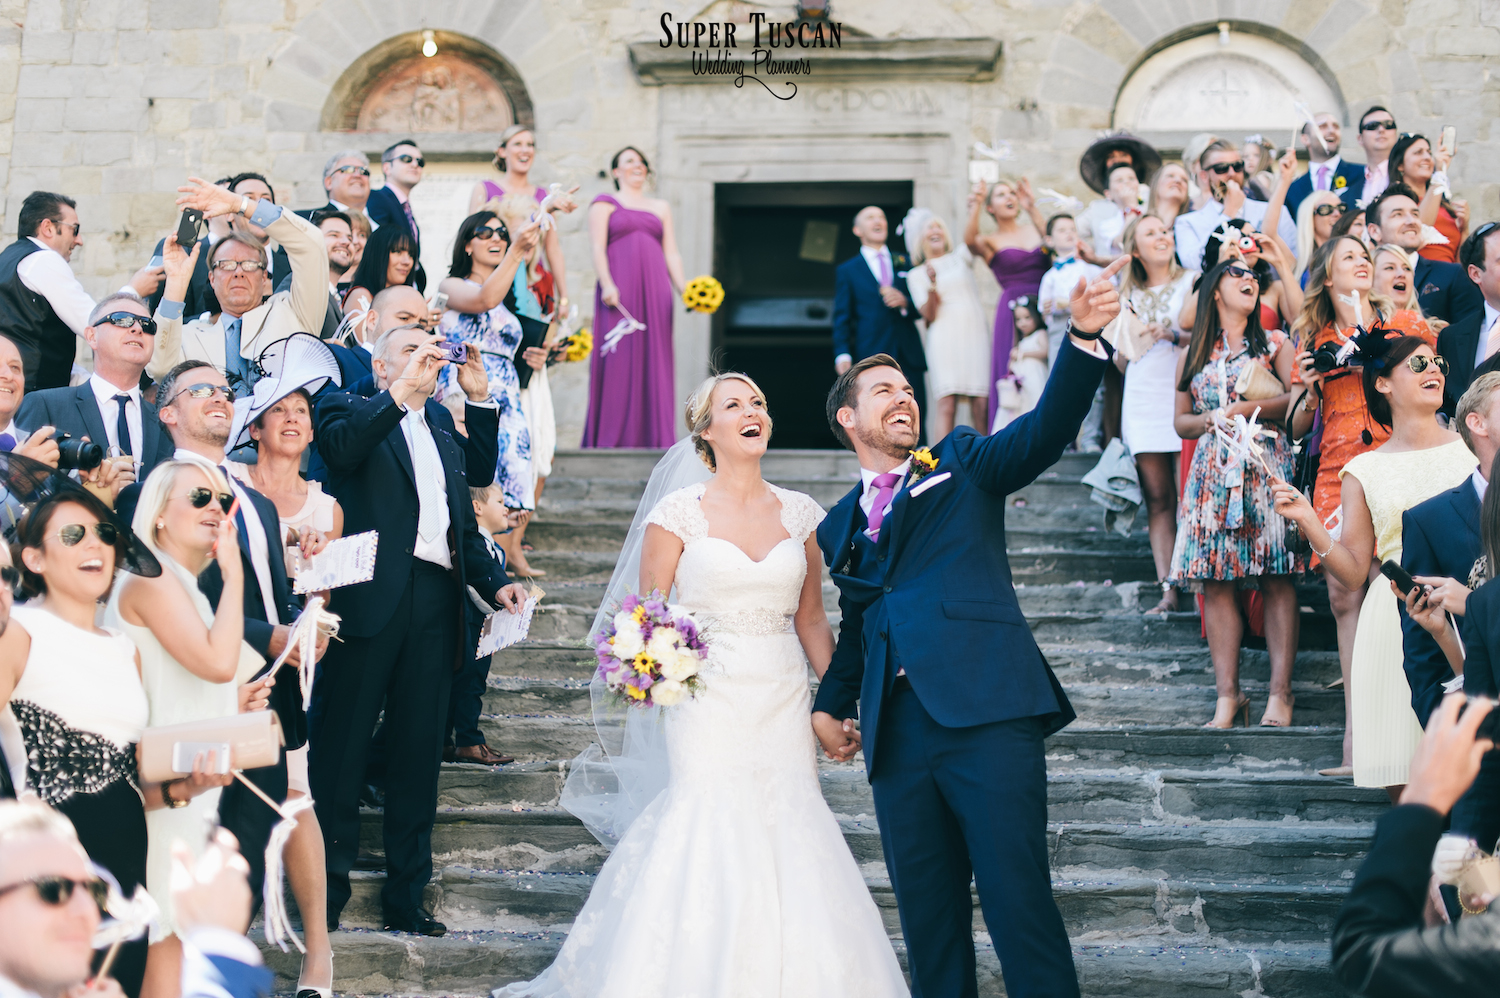 12real weddings by super tuscan wedding planners civil ceremony